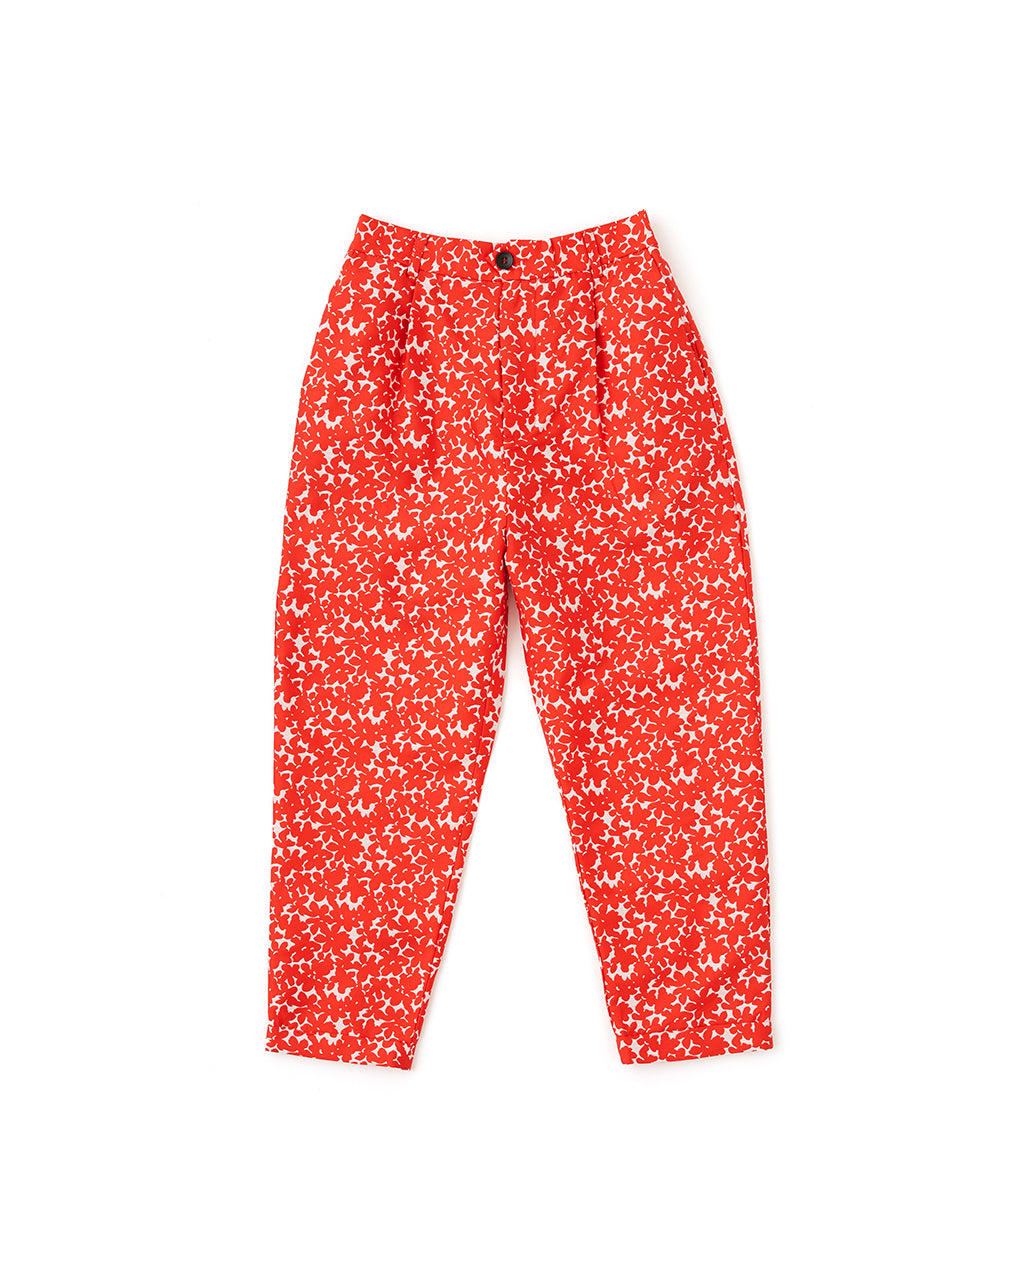 Red and white floral printed pants with cropped length and button closure laying flat on white background